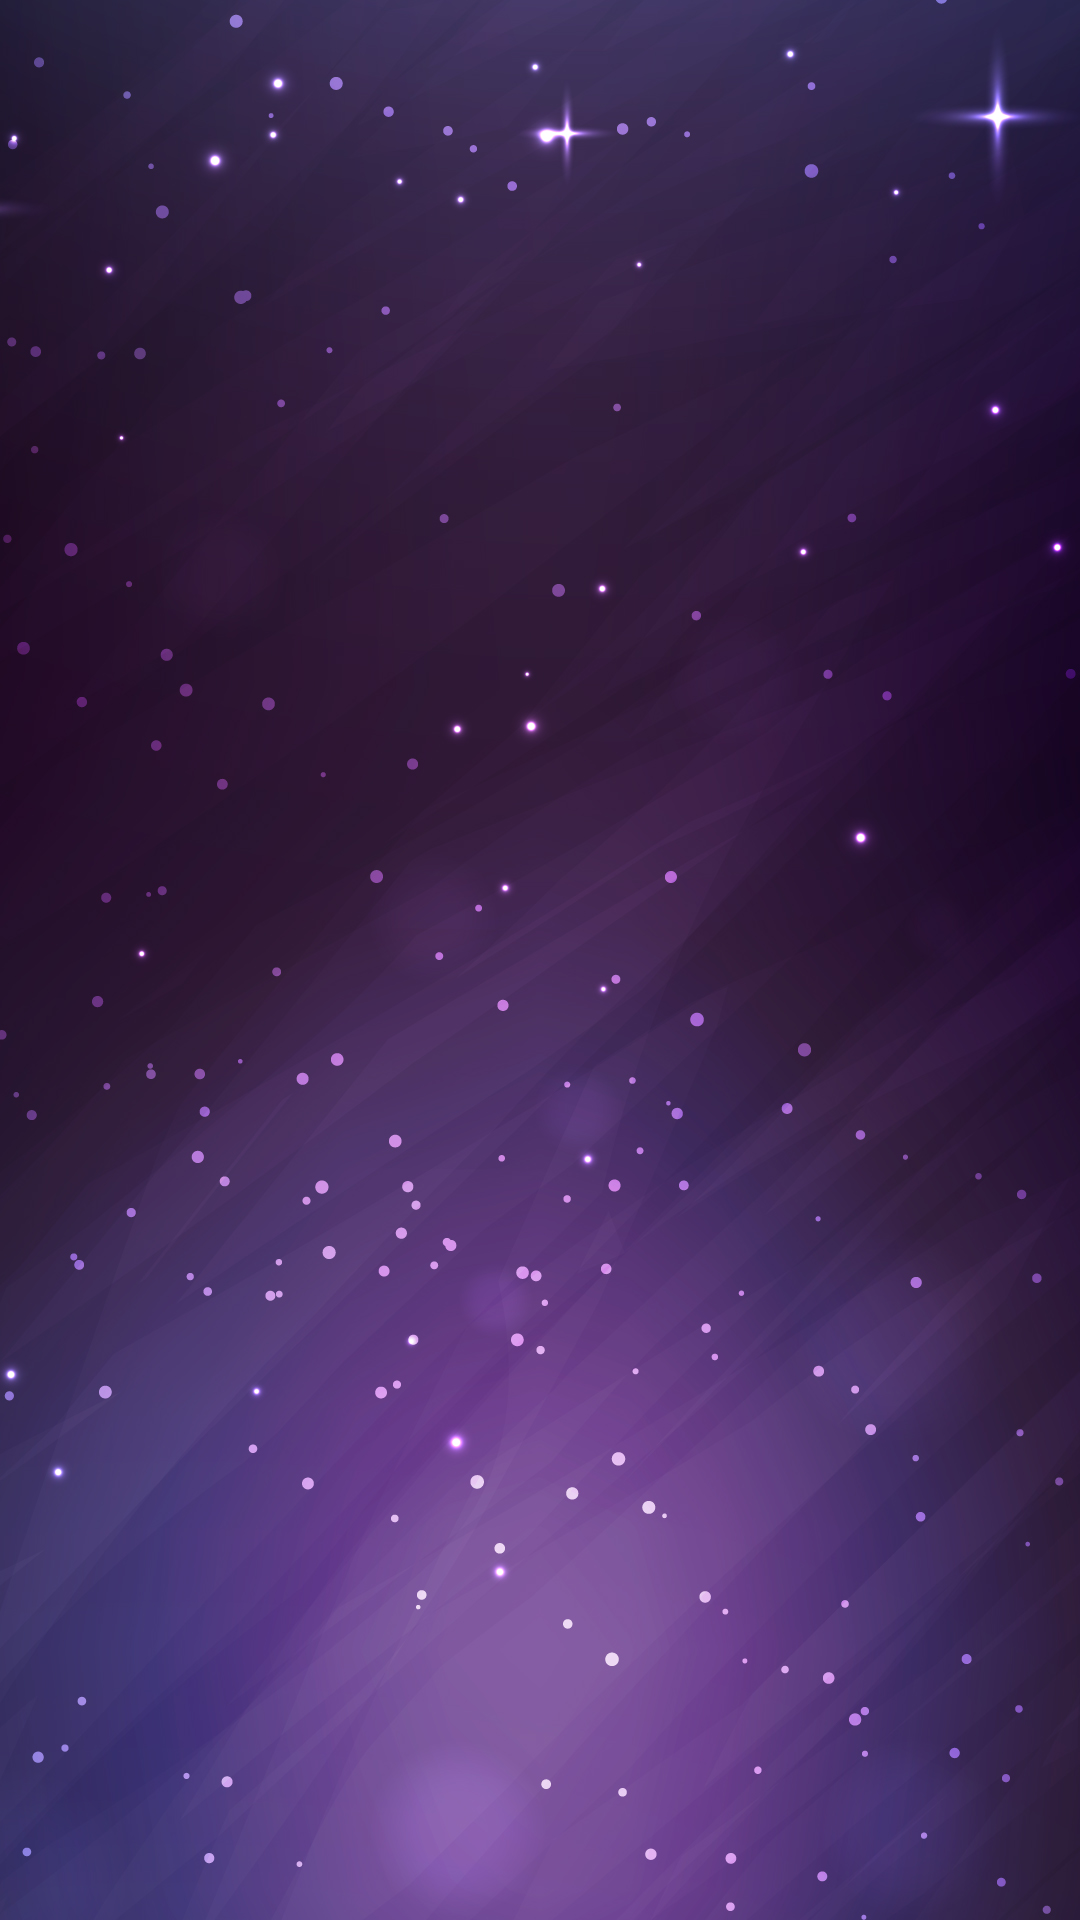 Iphone 5 Wallpaper Dimensions Purple Space Hd Wallpaper For Your Mobile Phone